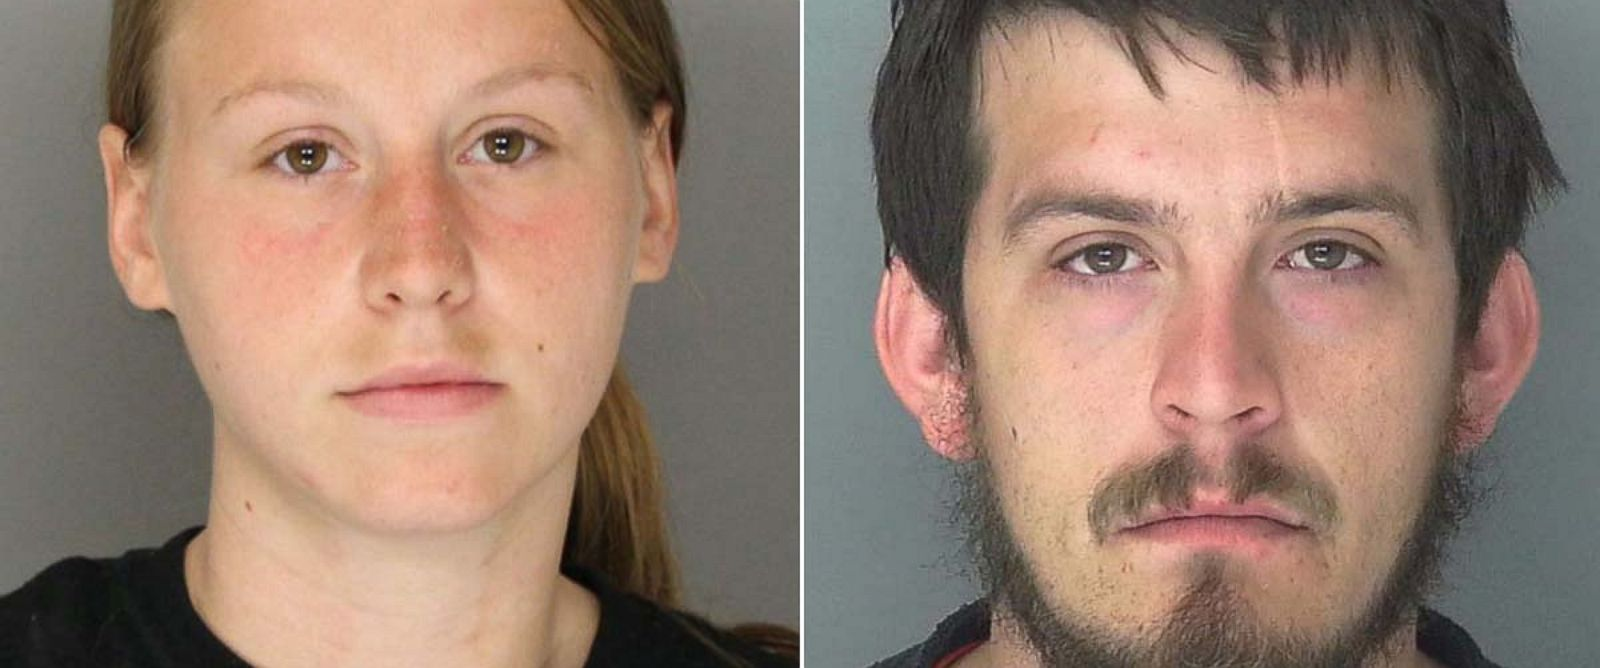 PHOTO: Kayla Norton, 25, and Jose Torres, 26, the parents of three children, were sentenced to prison time for their involvement in a 2015 incident in which they shouted racial slurs and made armed threats at people attending a childs party in Atlanta.